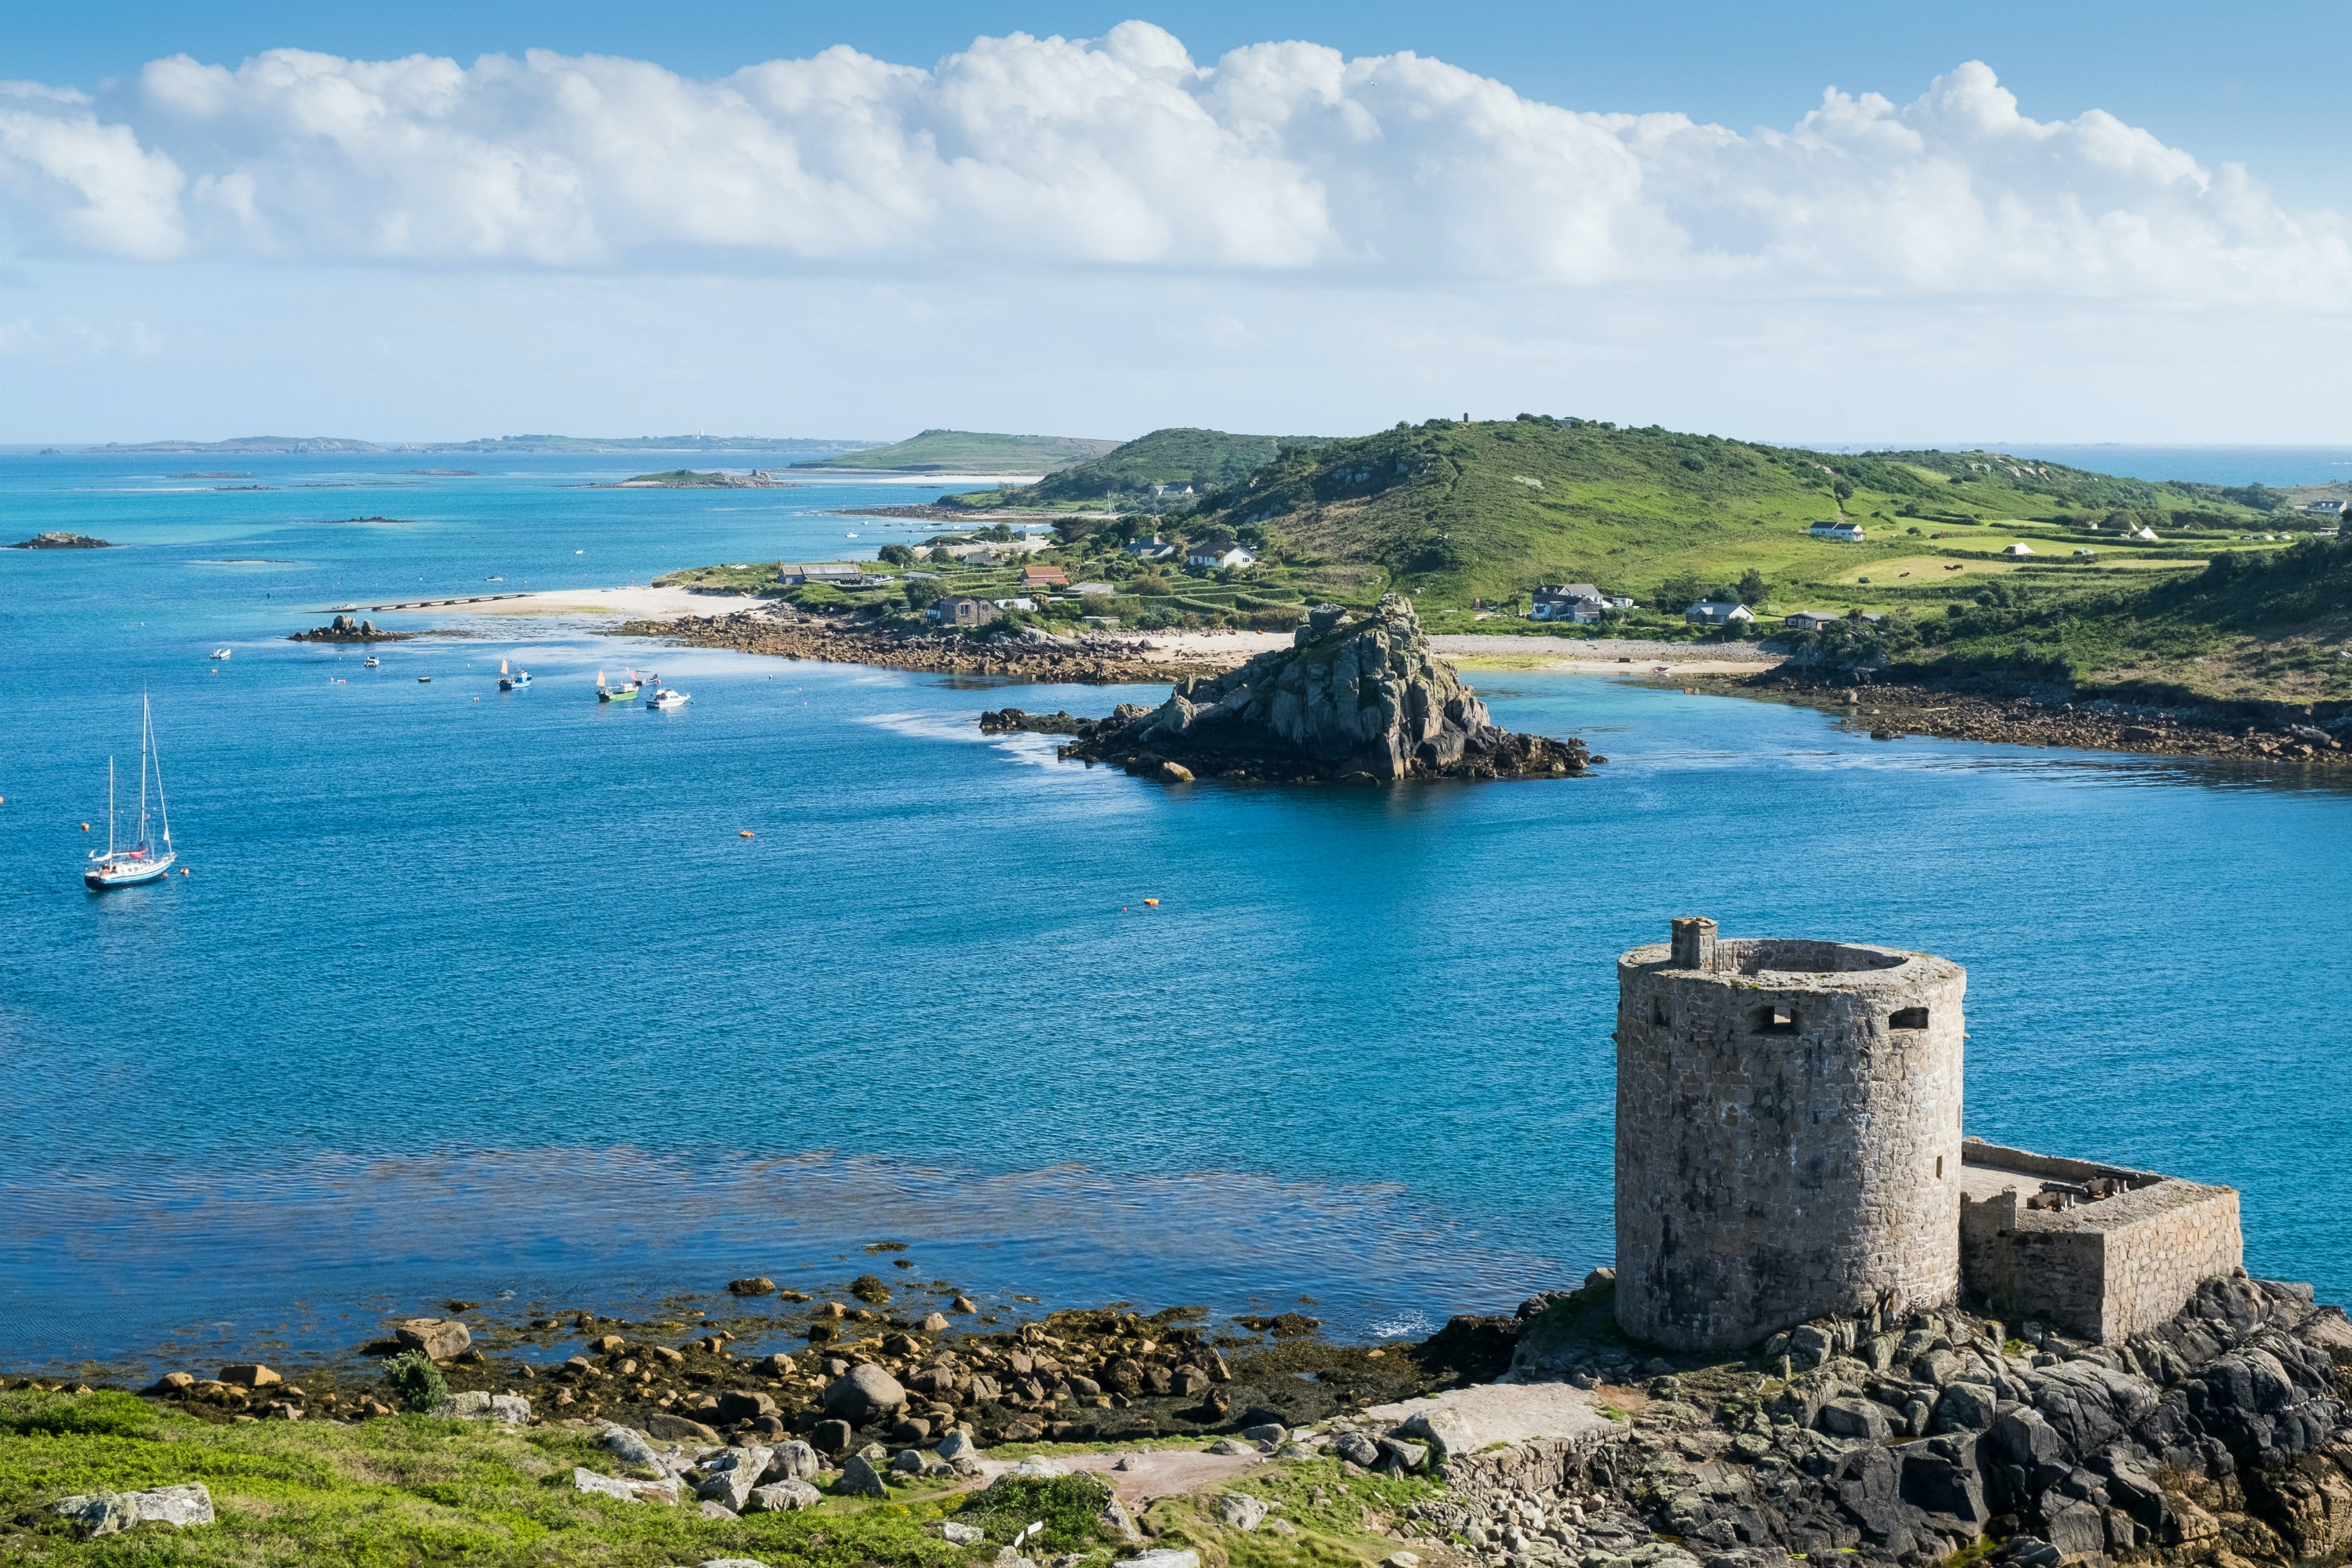 Crumbling castles and white-sand beaches are among the highlights on the islands.